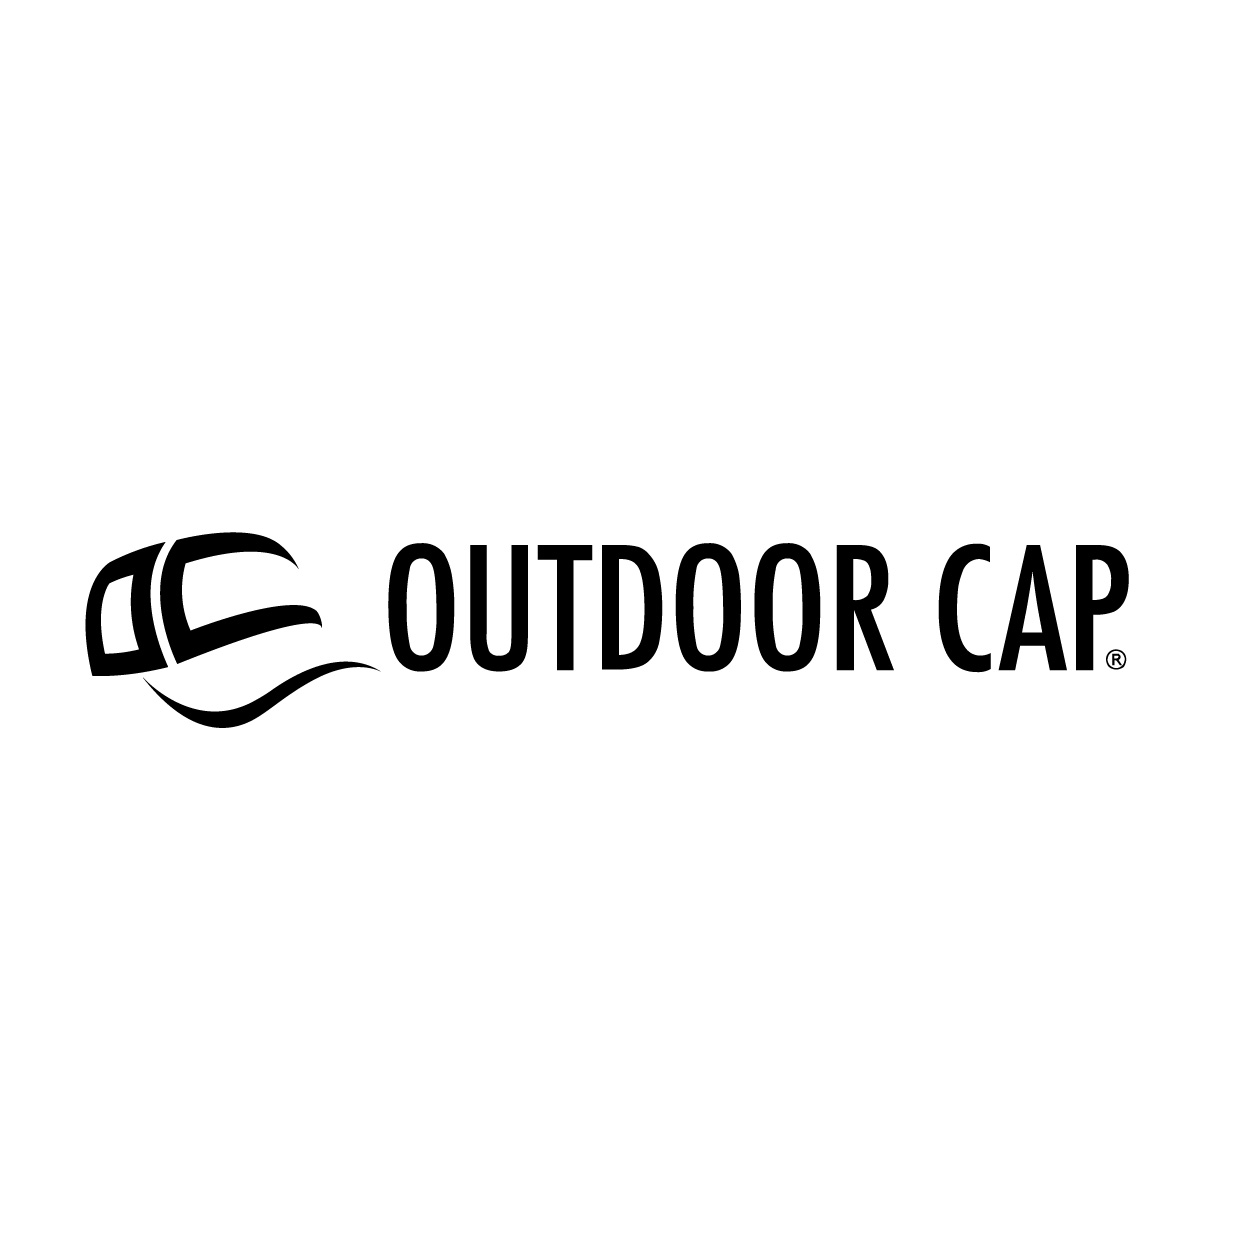 outdoor cap.jpg